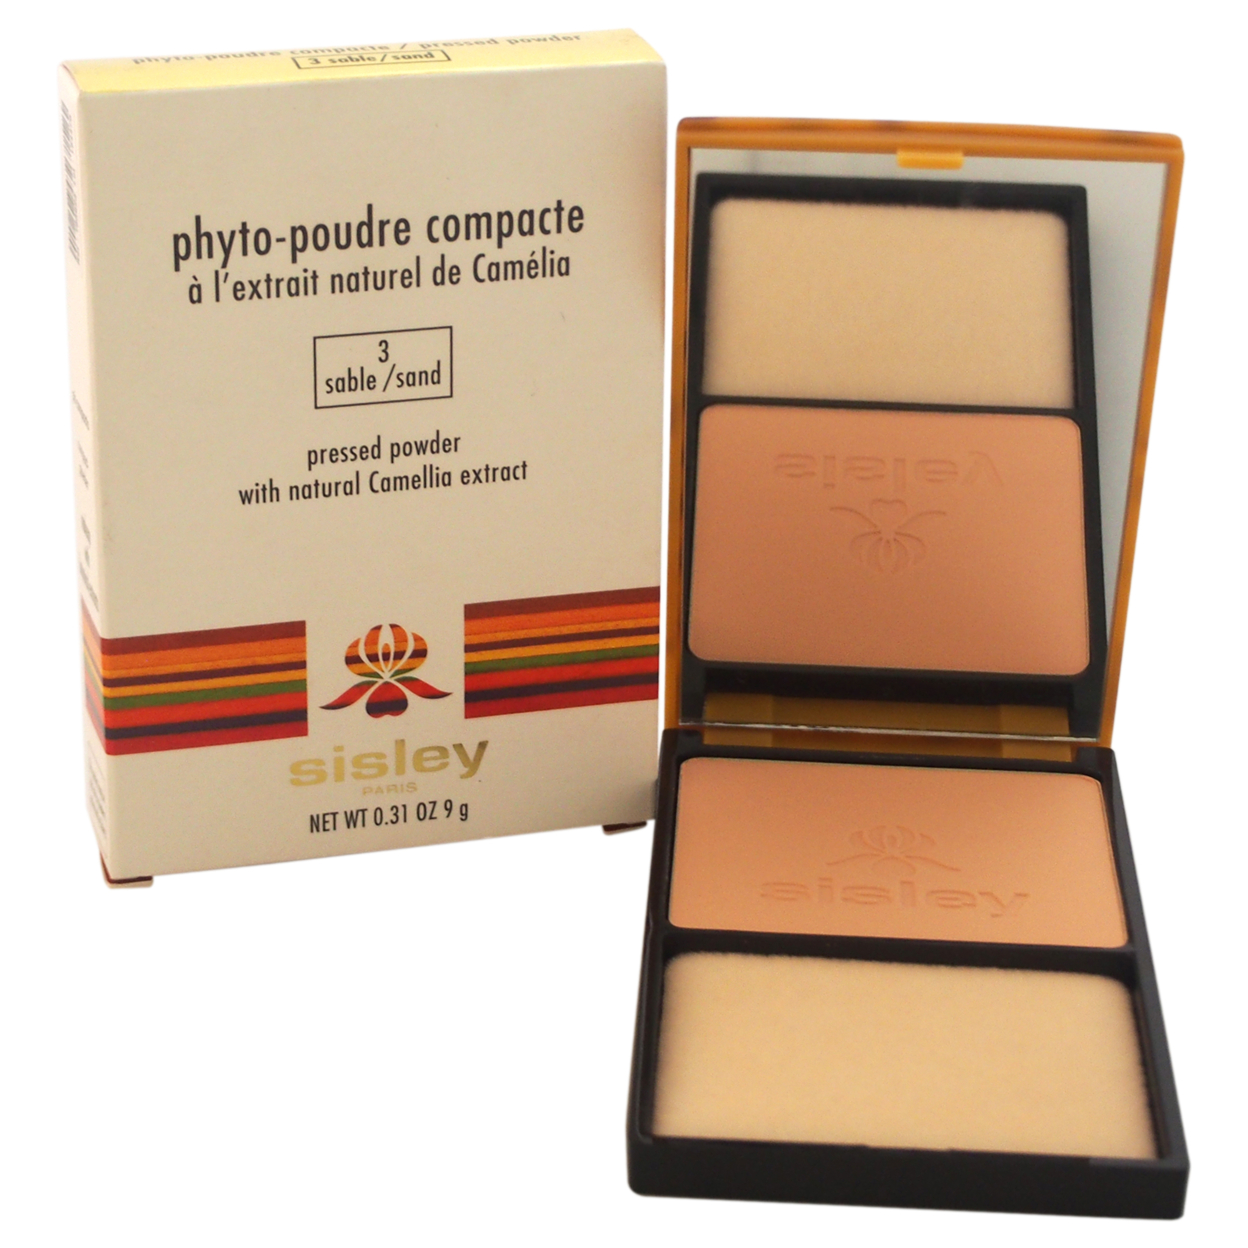 Phyto-Poudre Compacte Pressed Powder - # 3 Sable / Sand by Sisley for Women - 0.31 oz Powder spirulina pacifica powder 16 oz multi pack